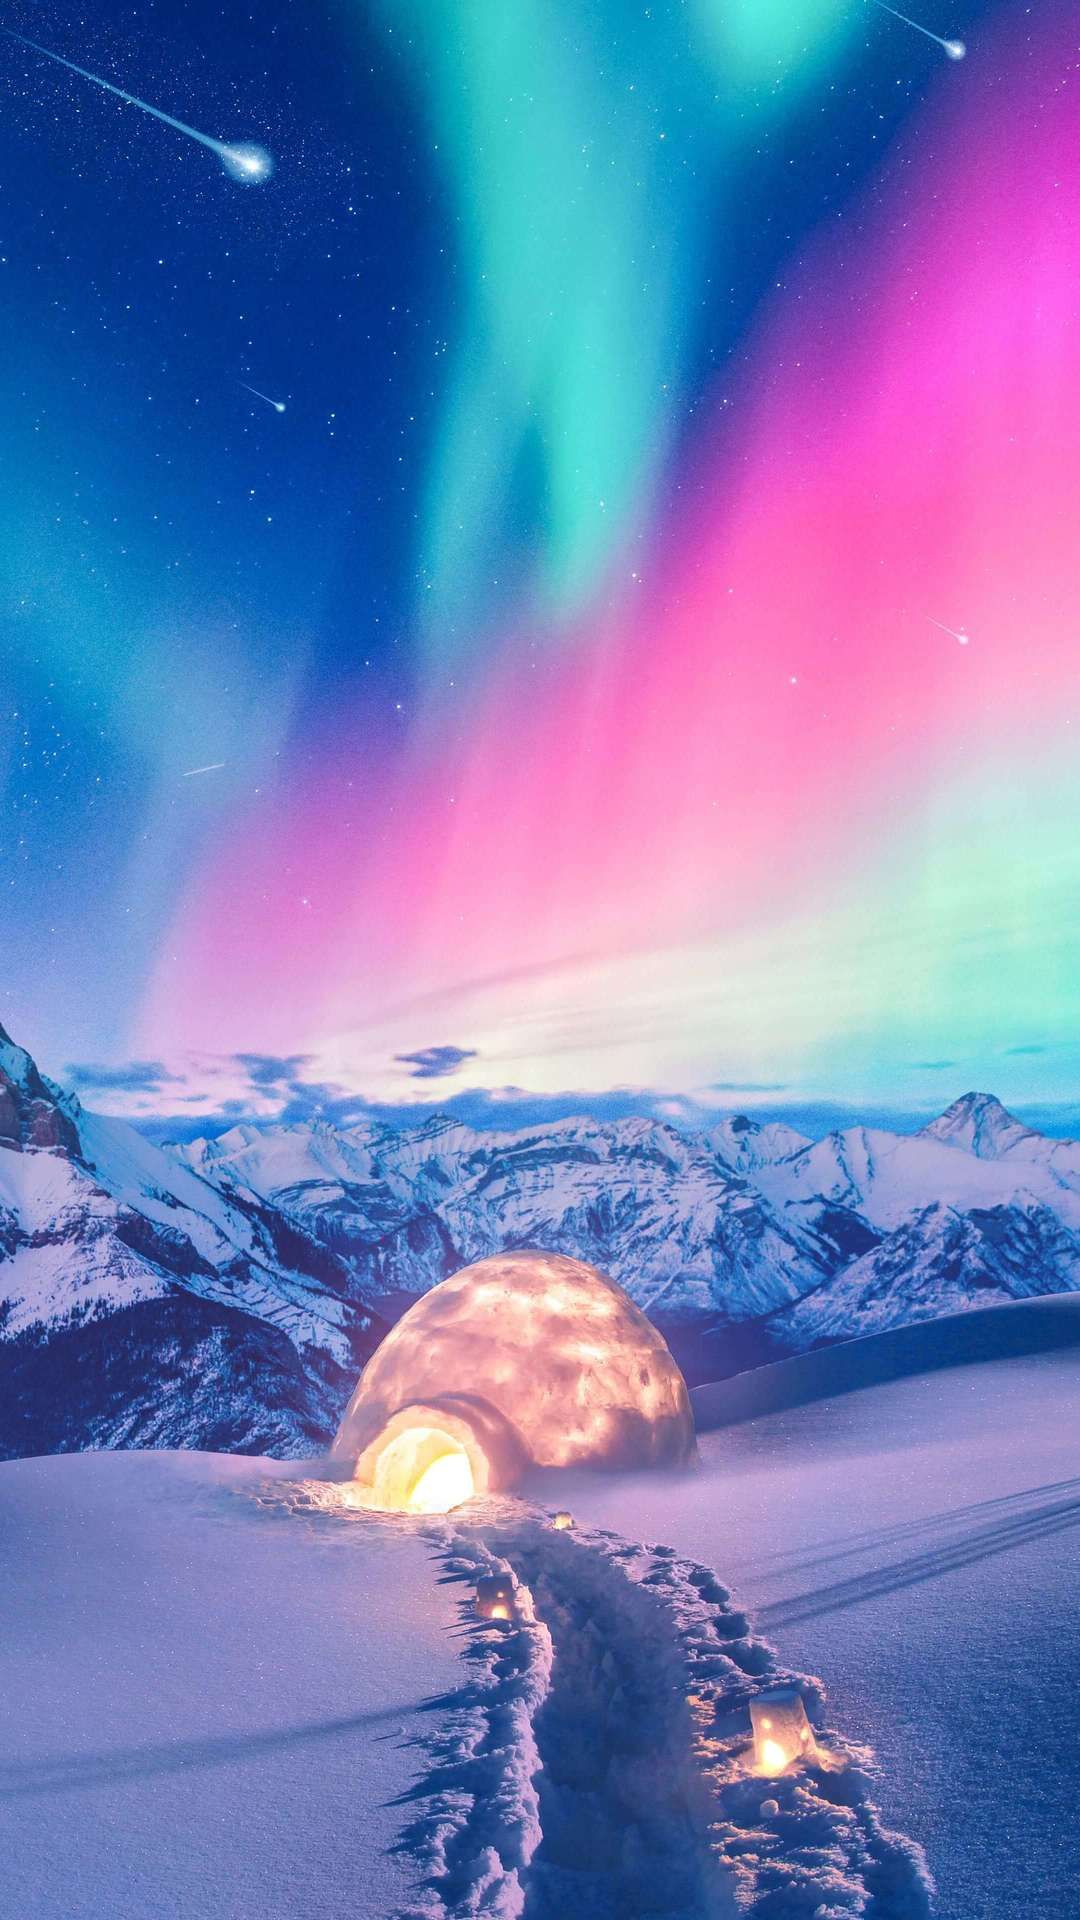 Snow Winter Iceland Aurora Northern Lights In 1080x1920 Resolution